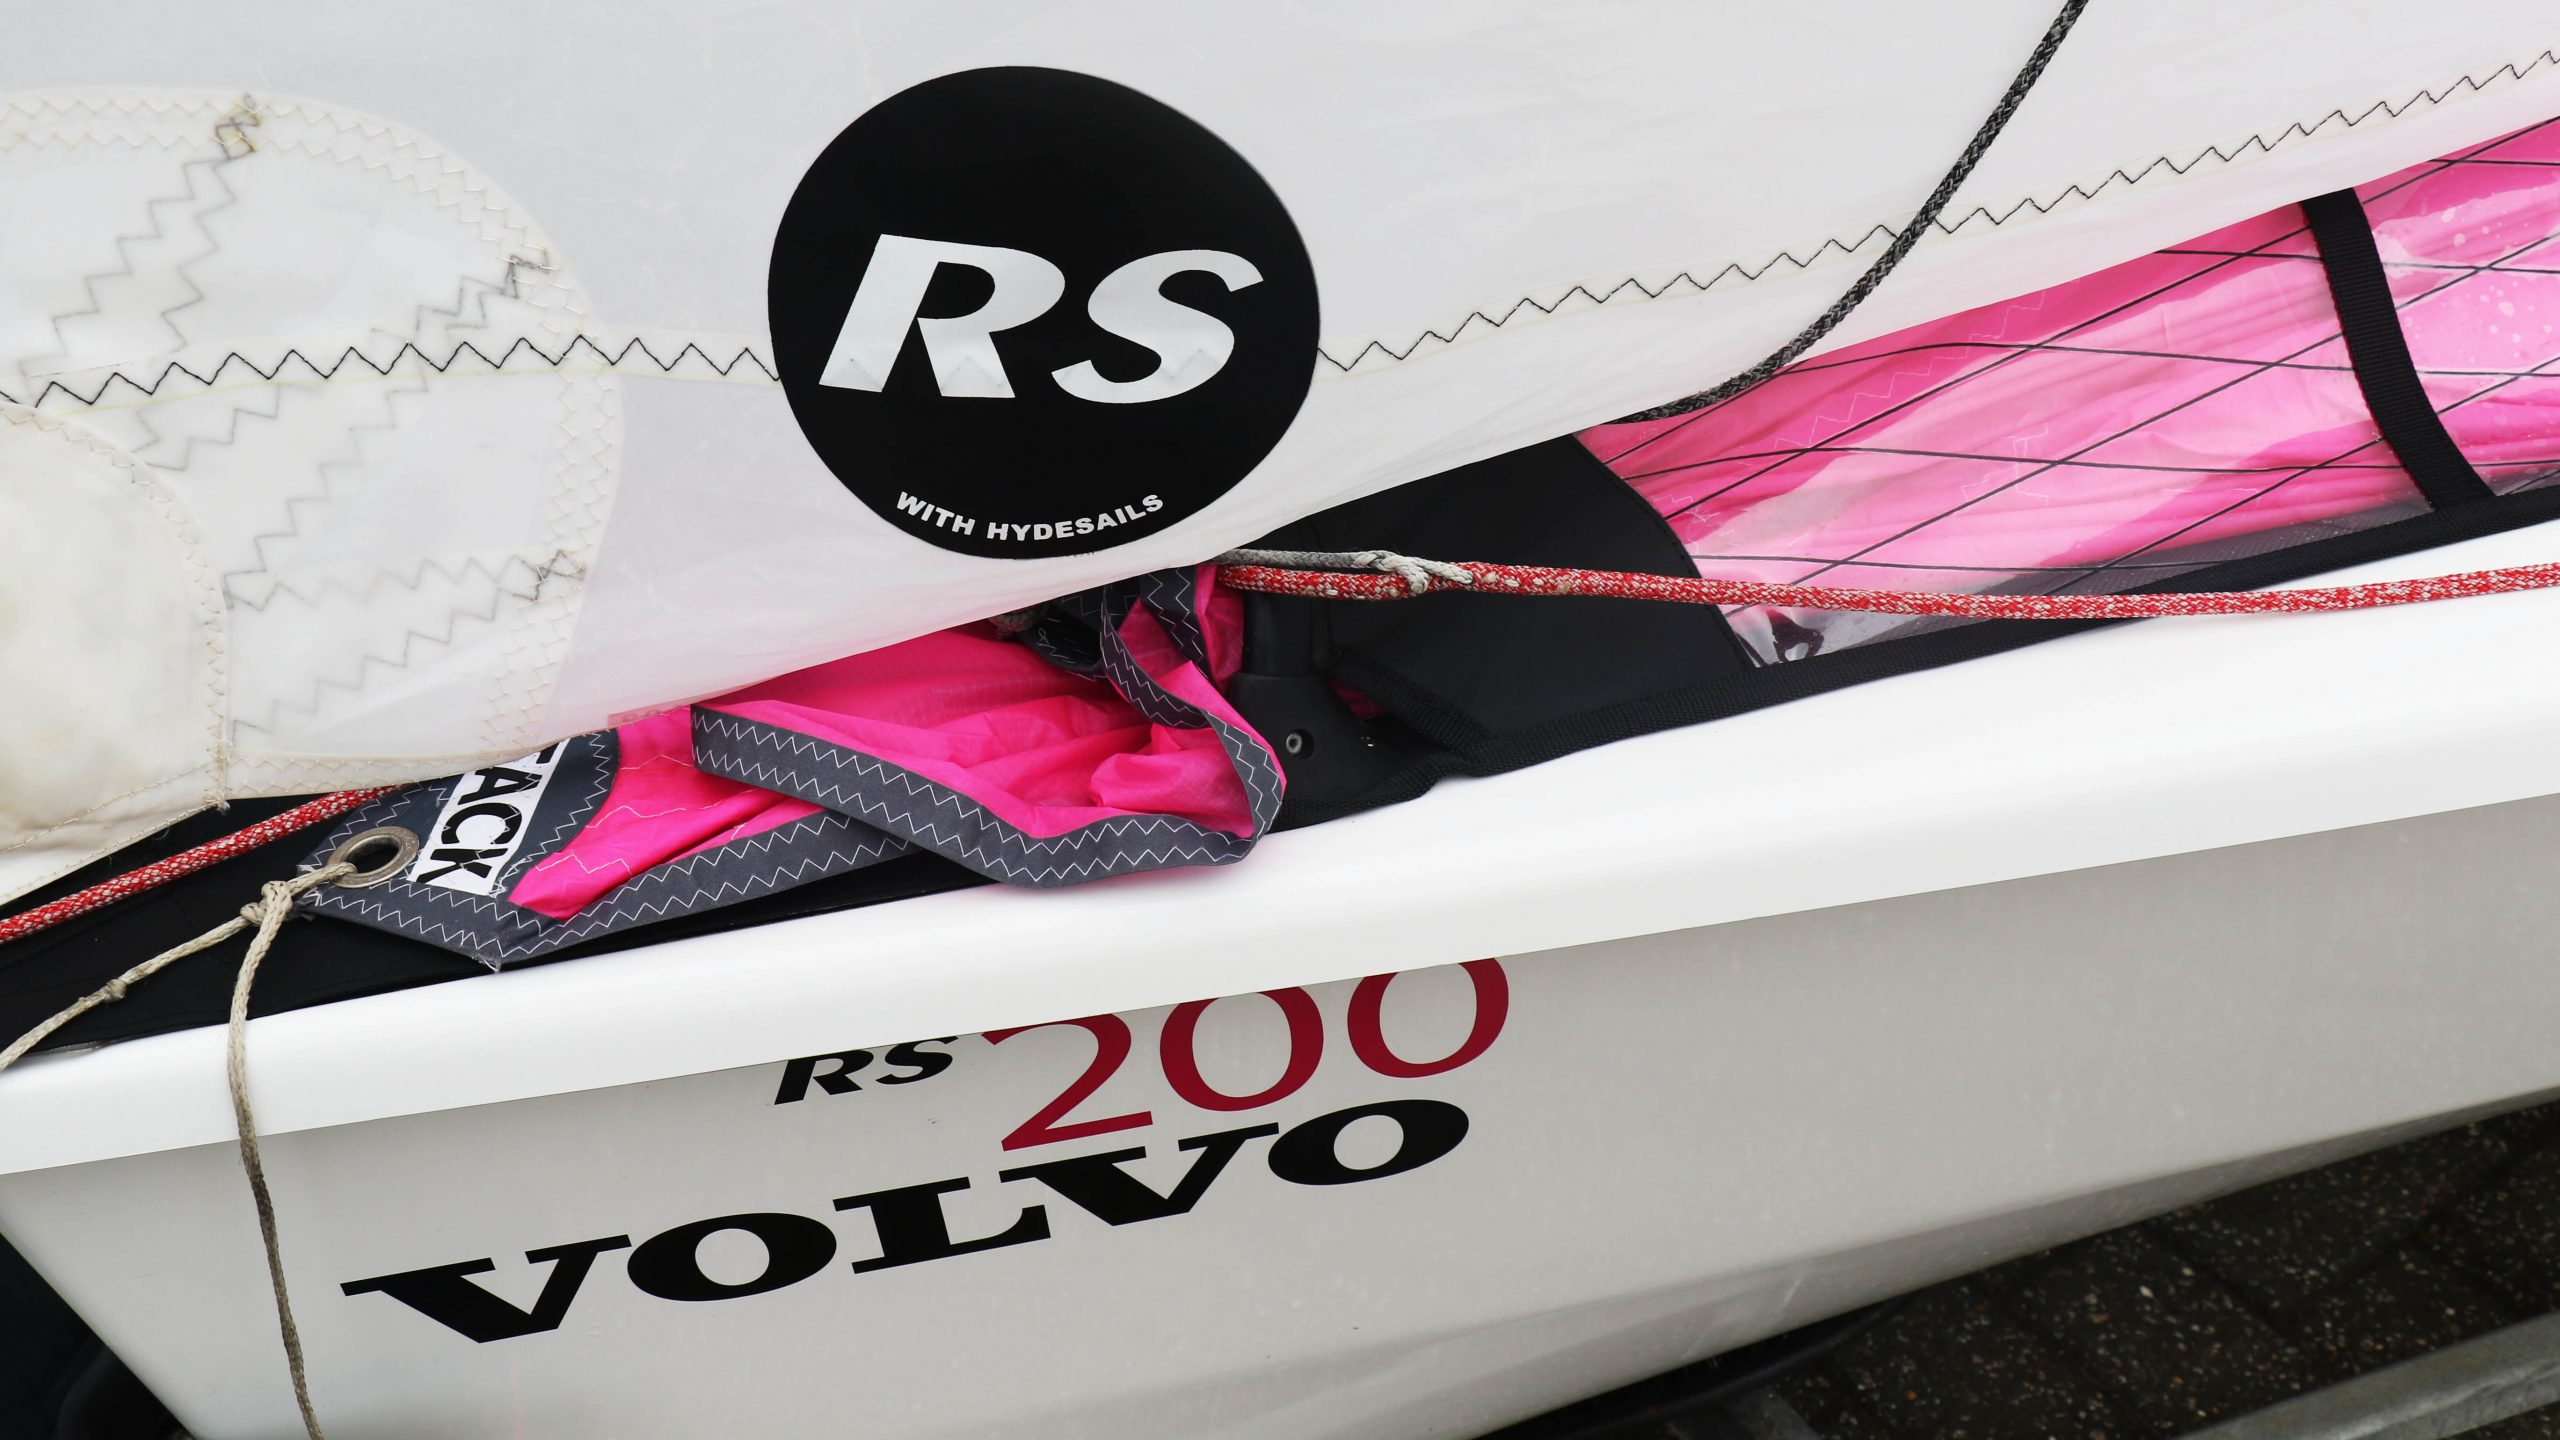 RS200 volvo